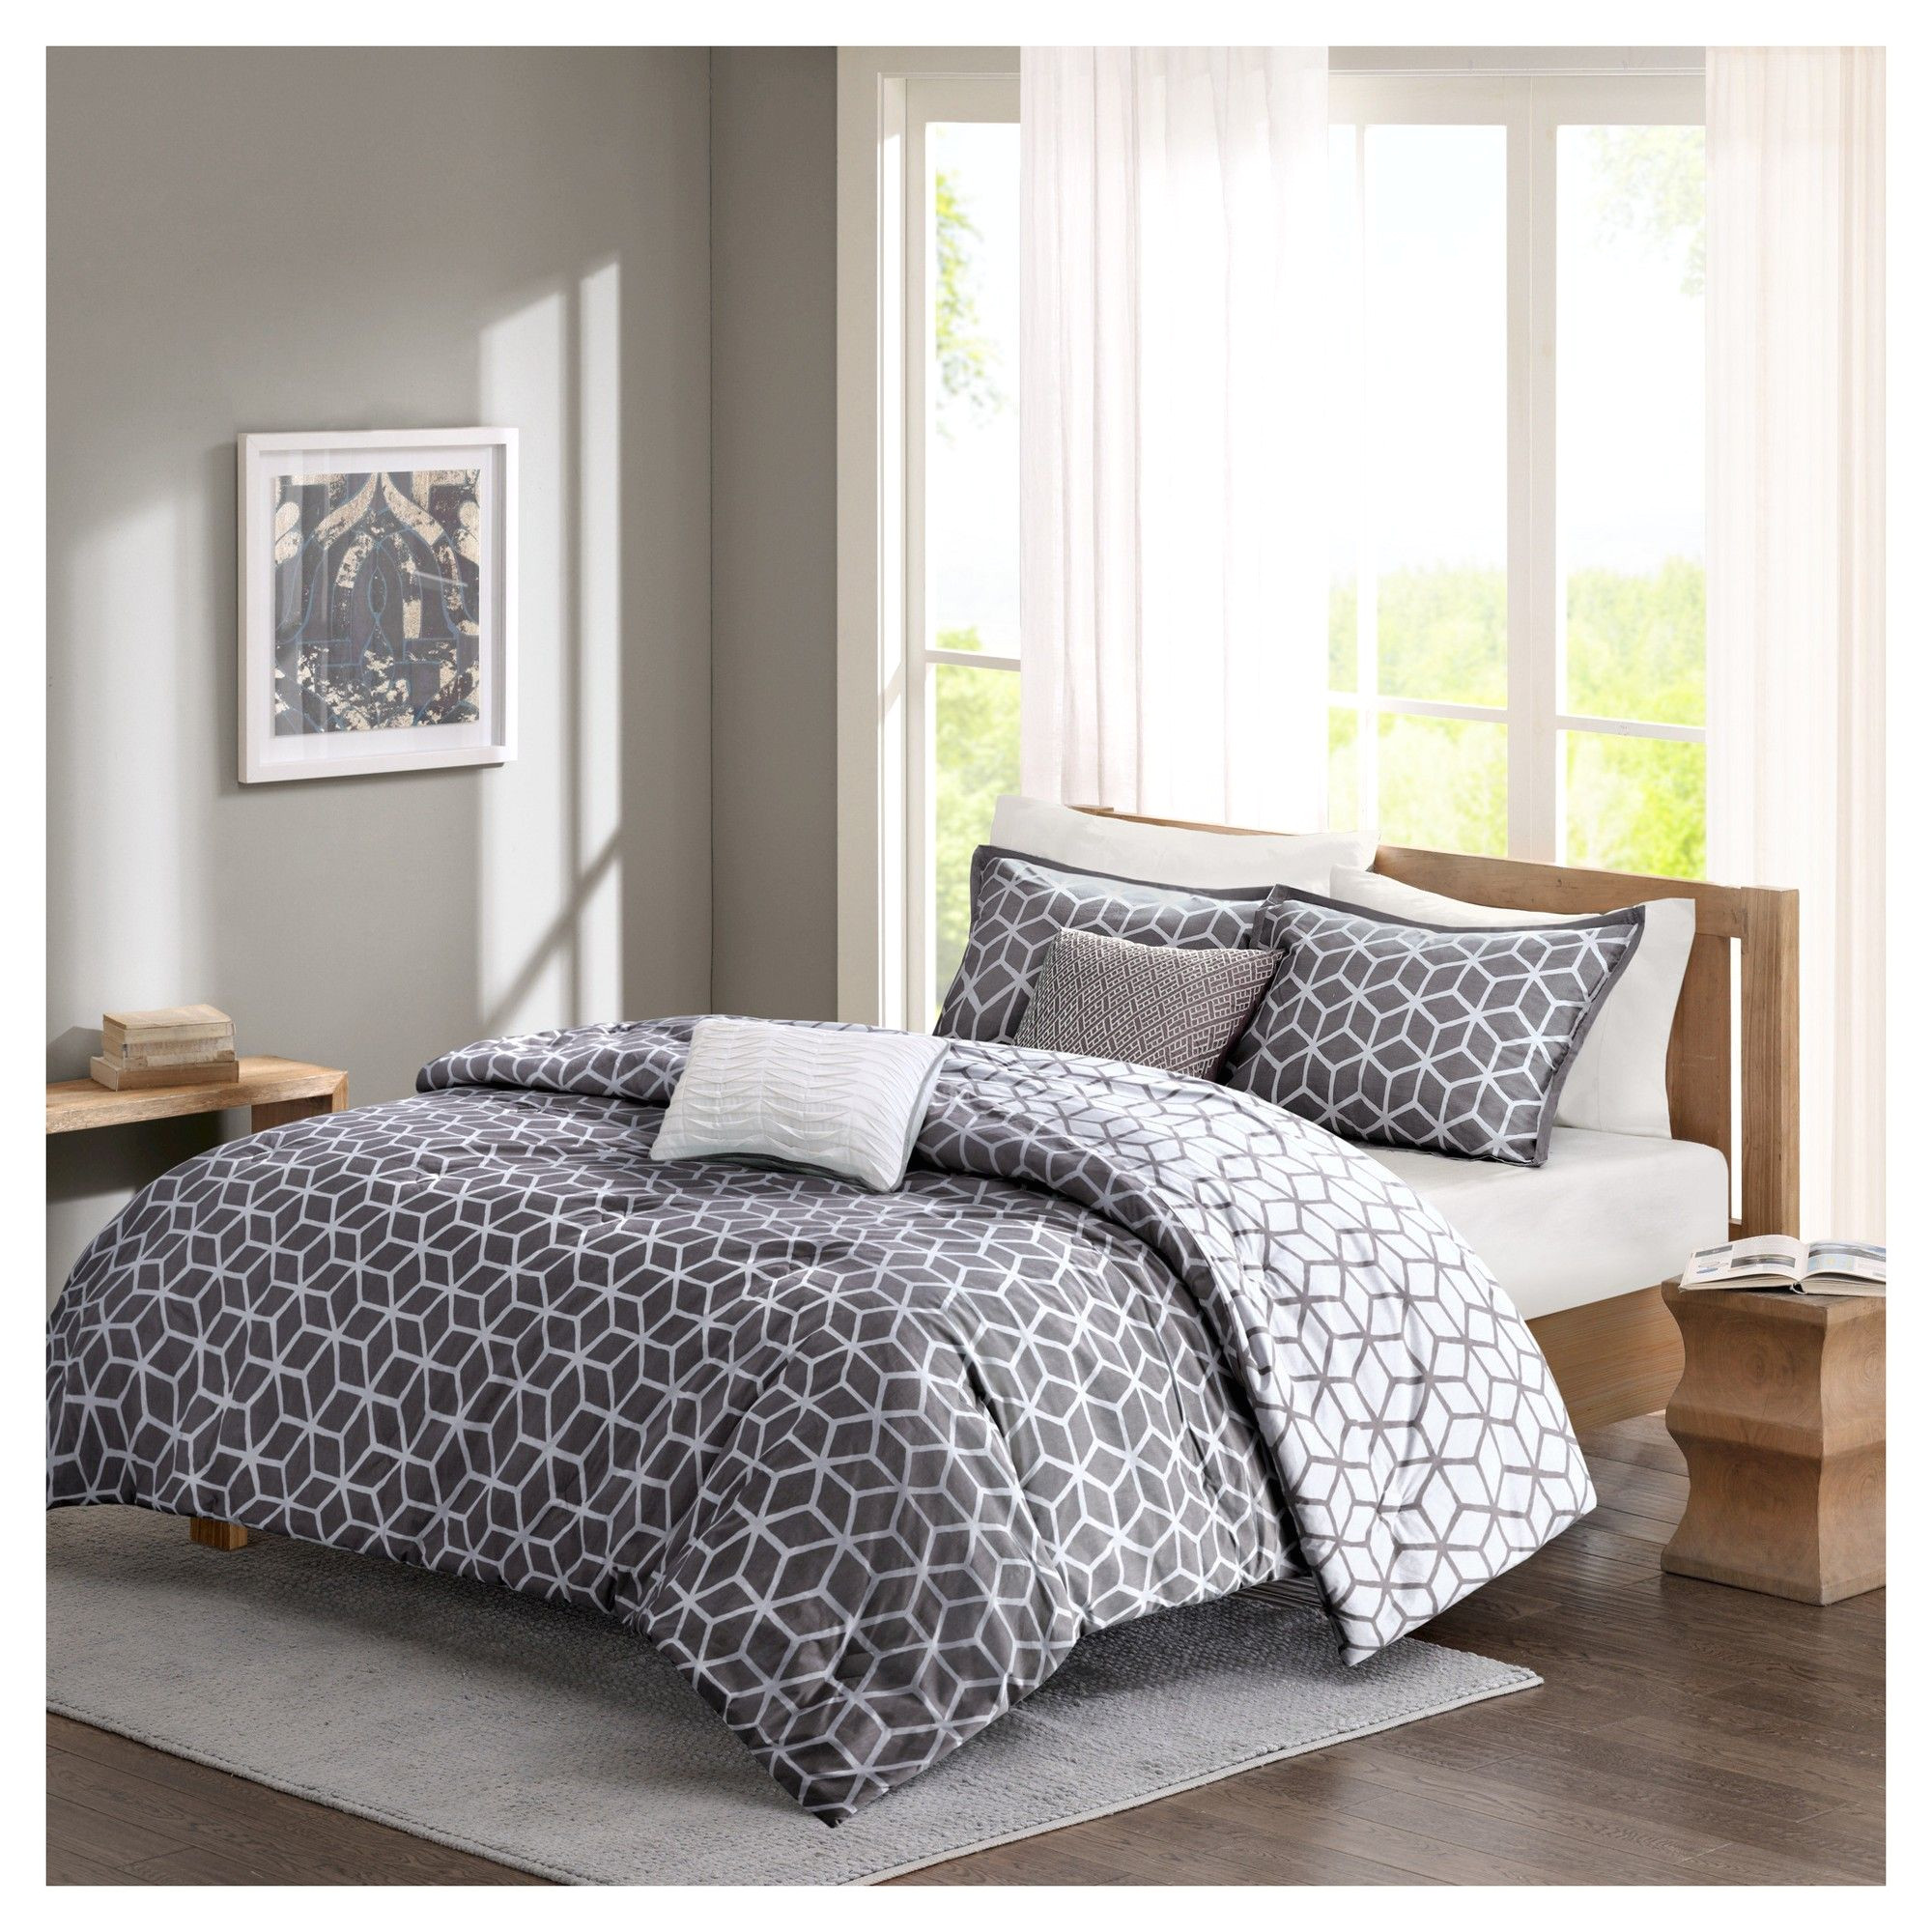 gianna geometric cotton comforter set king california king 5 piece gray